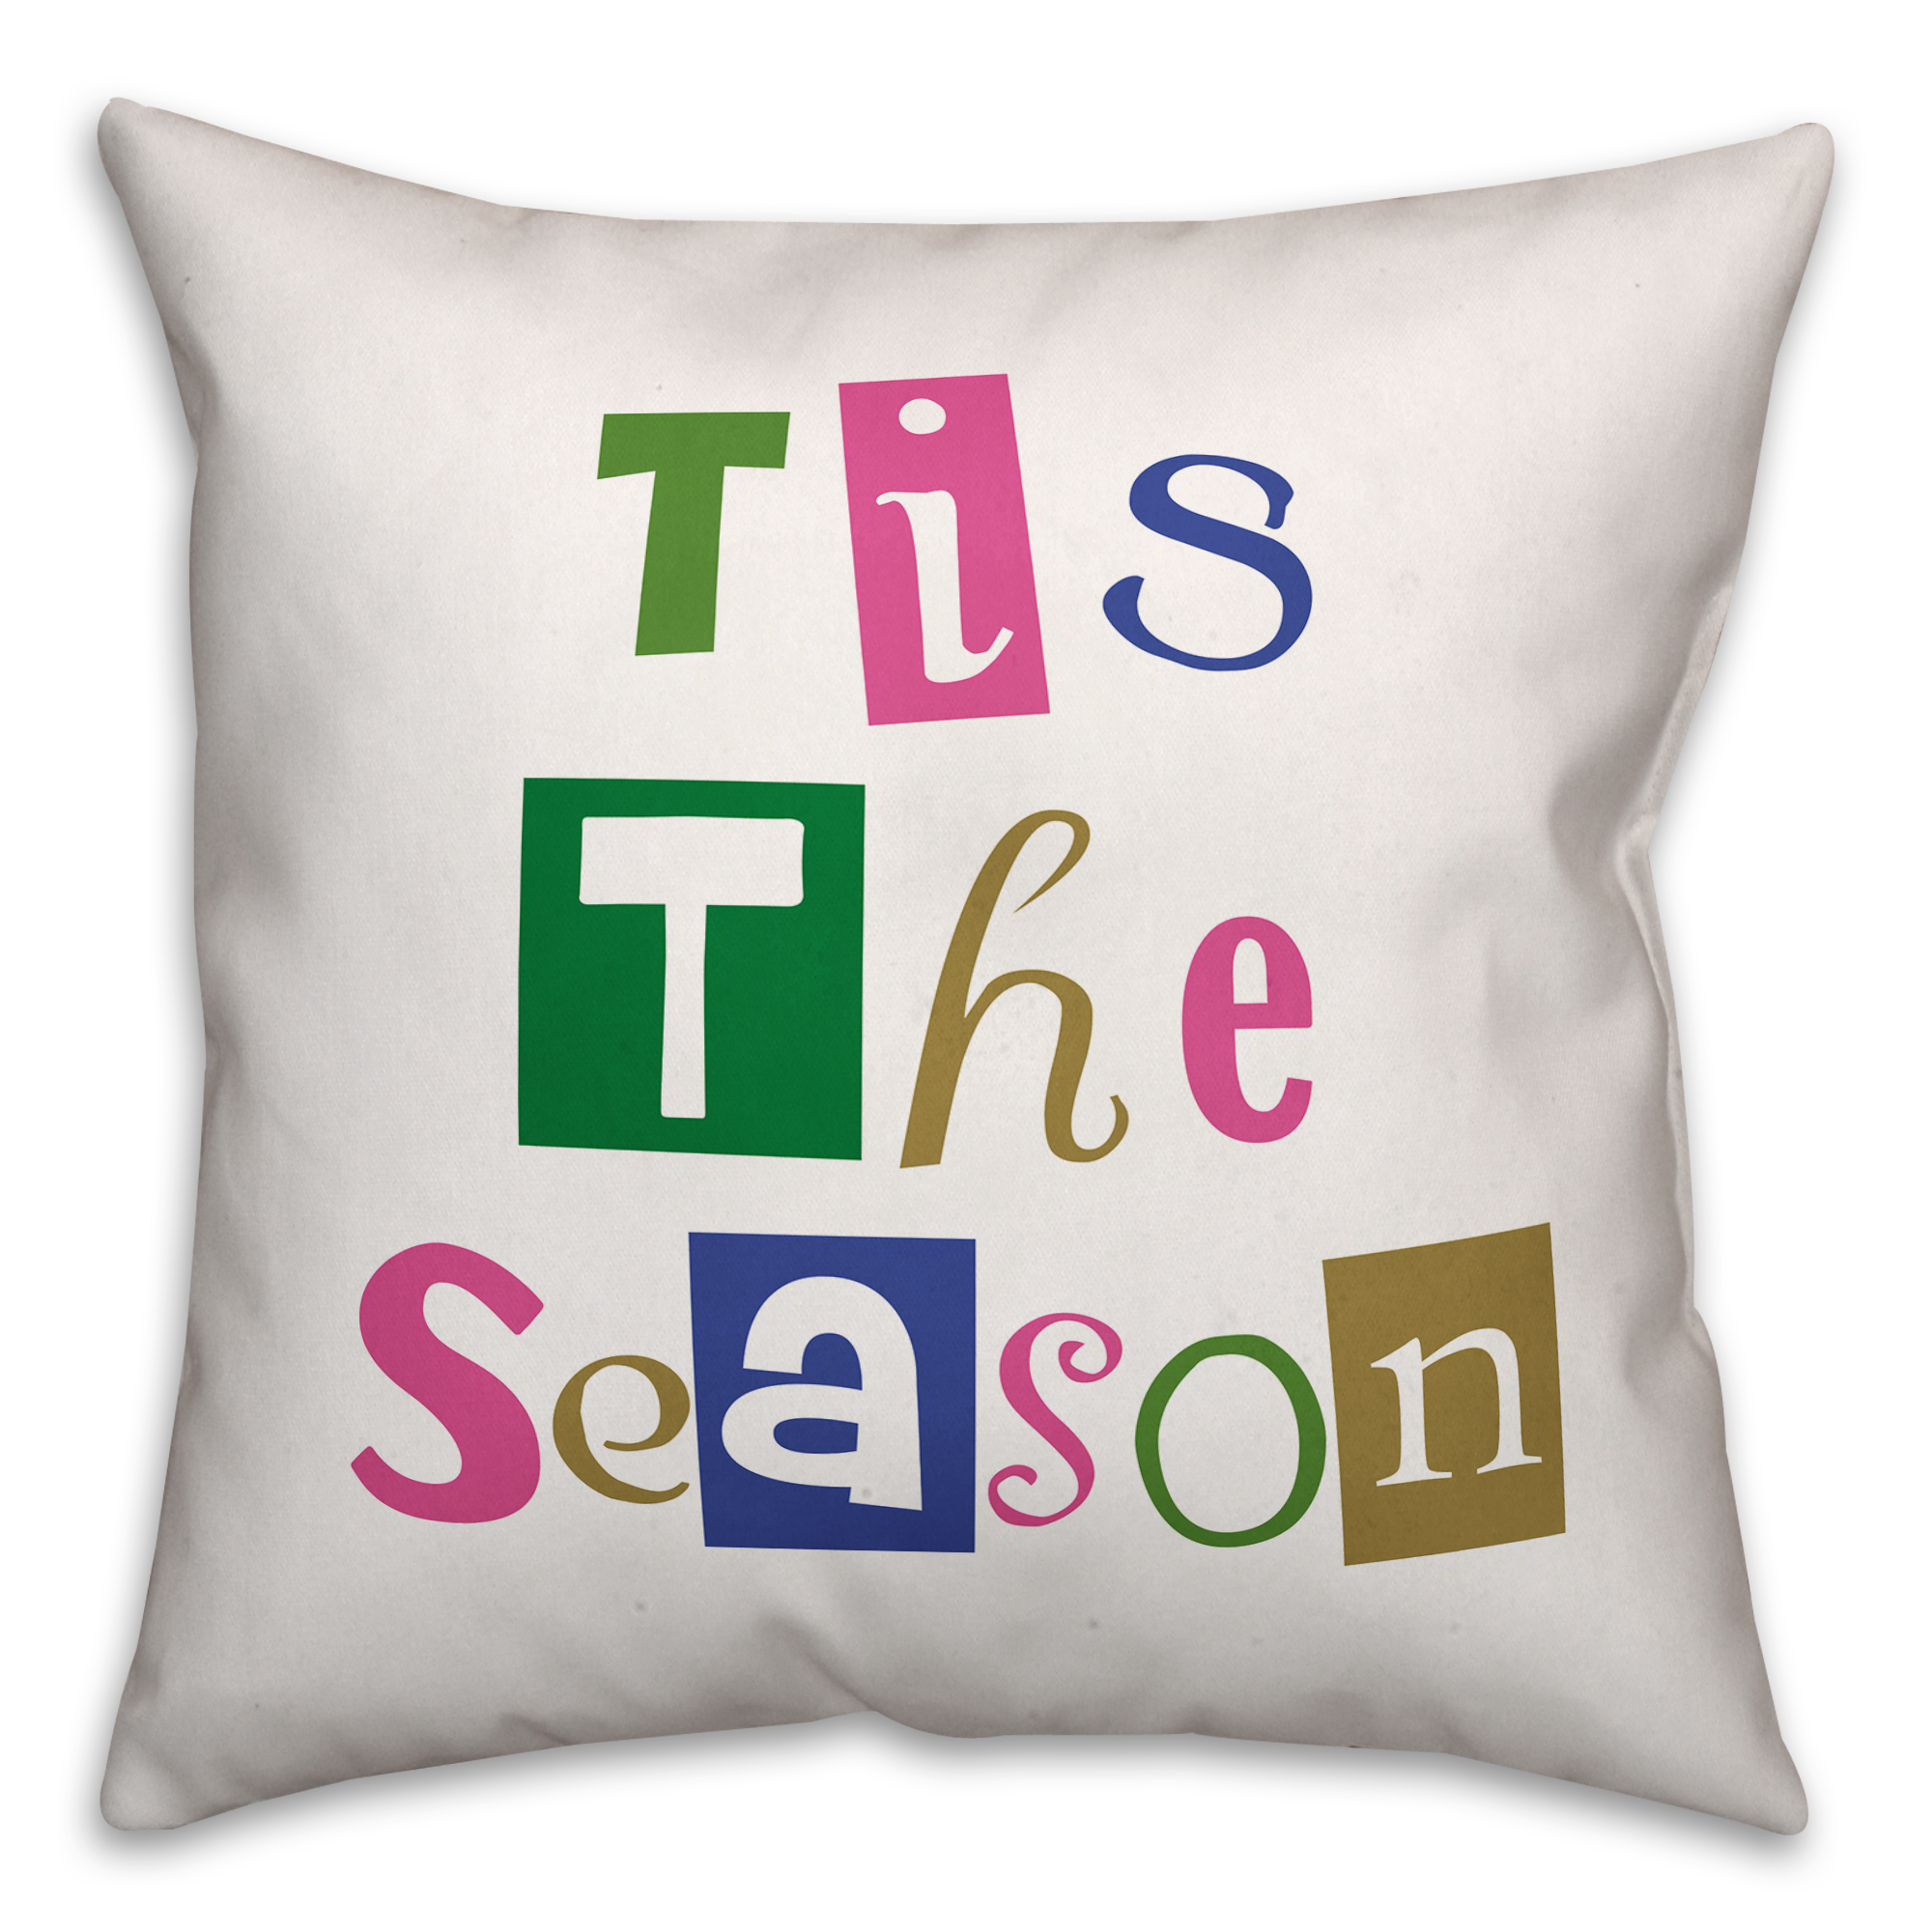 Tis the Season 18x18 Spun Poly Pillow Cover